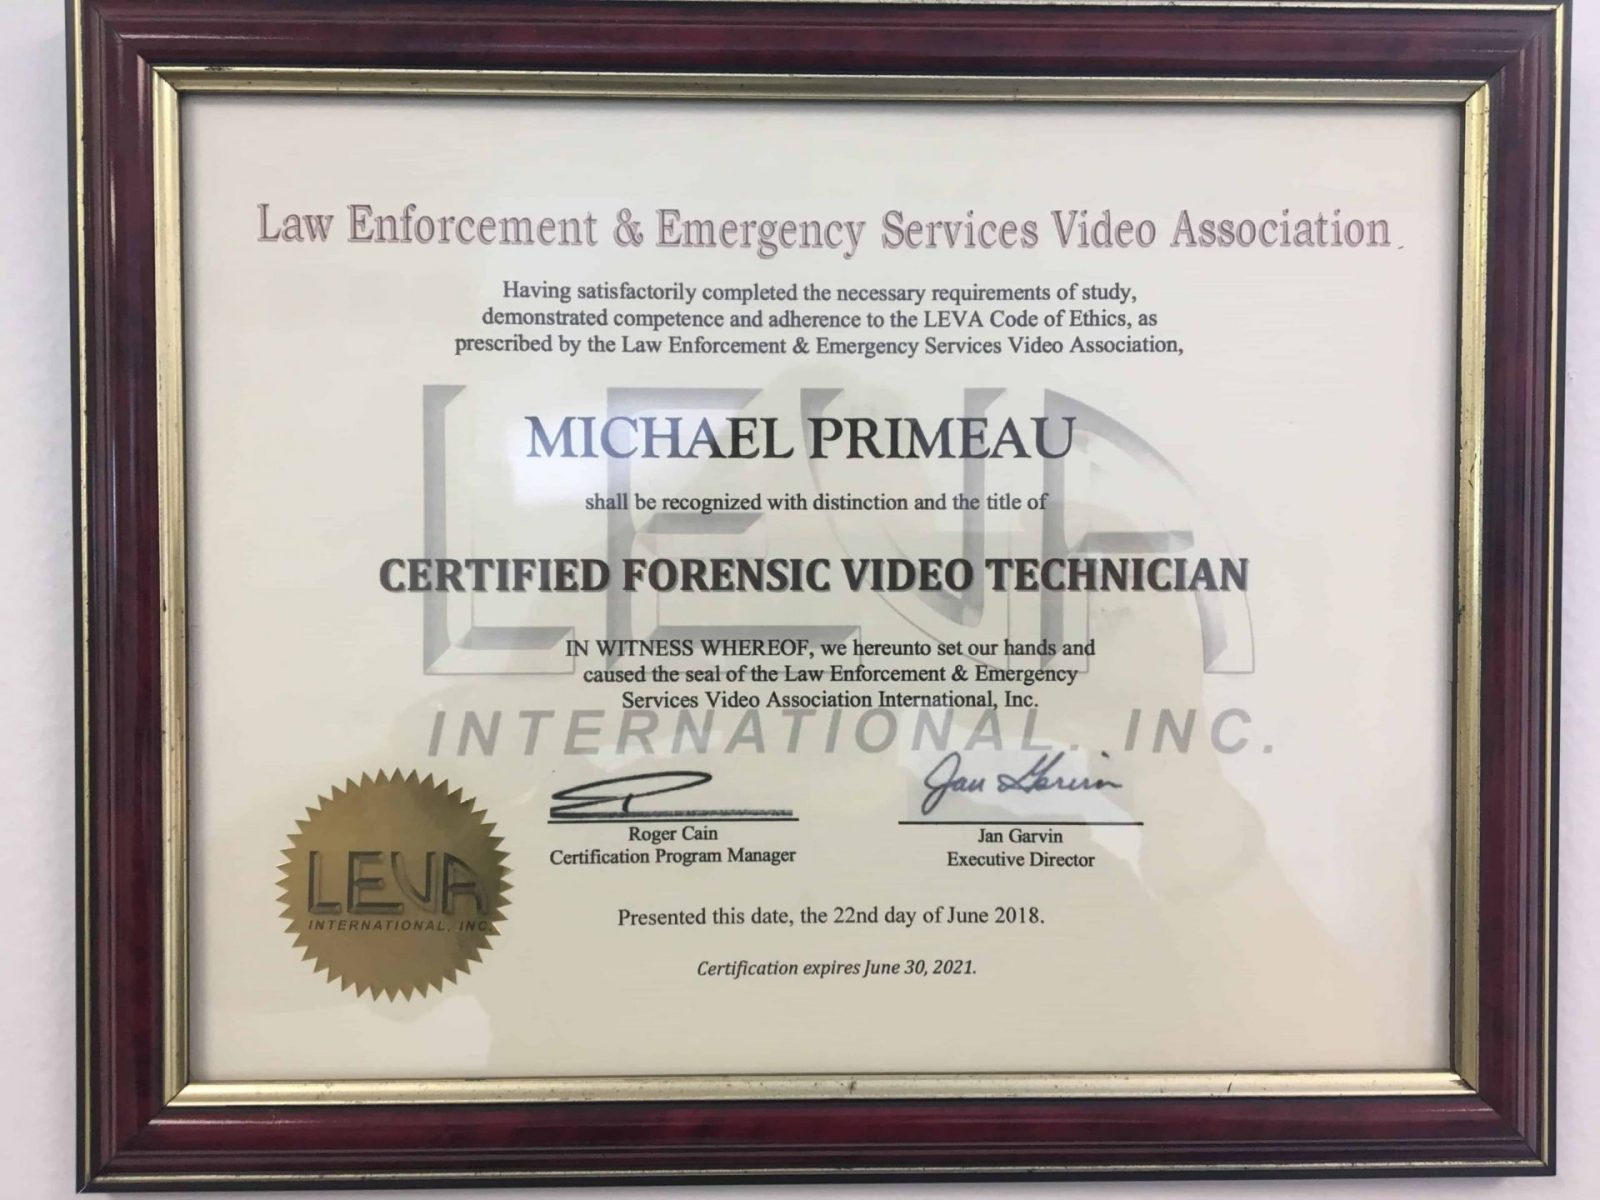 Certified Forensic Video Technician